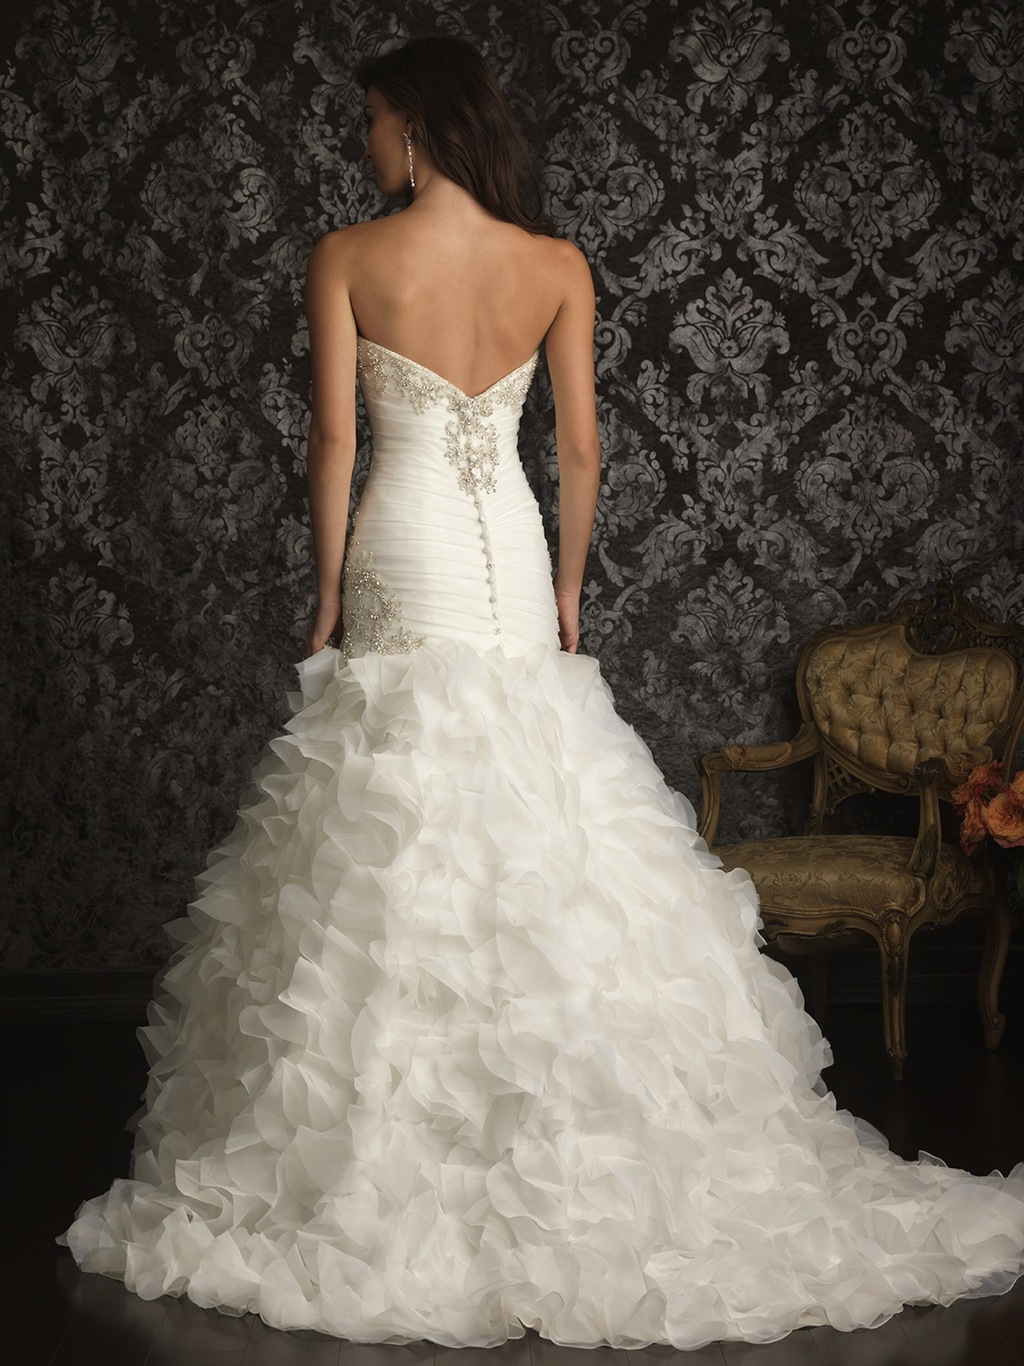 2013 Allure Bridals Wedding Dress Bridal Gown Allure Collection 9012